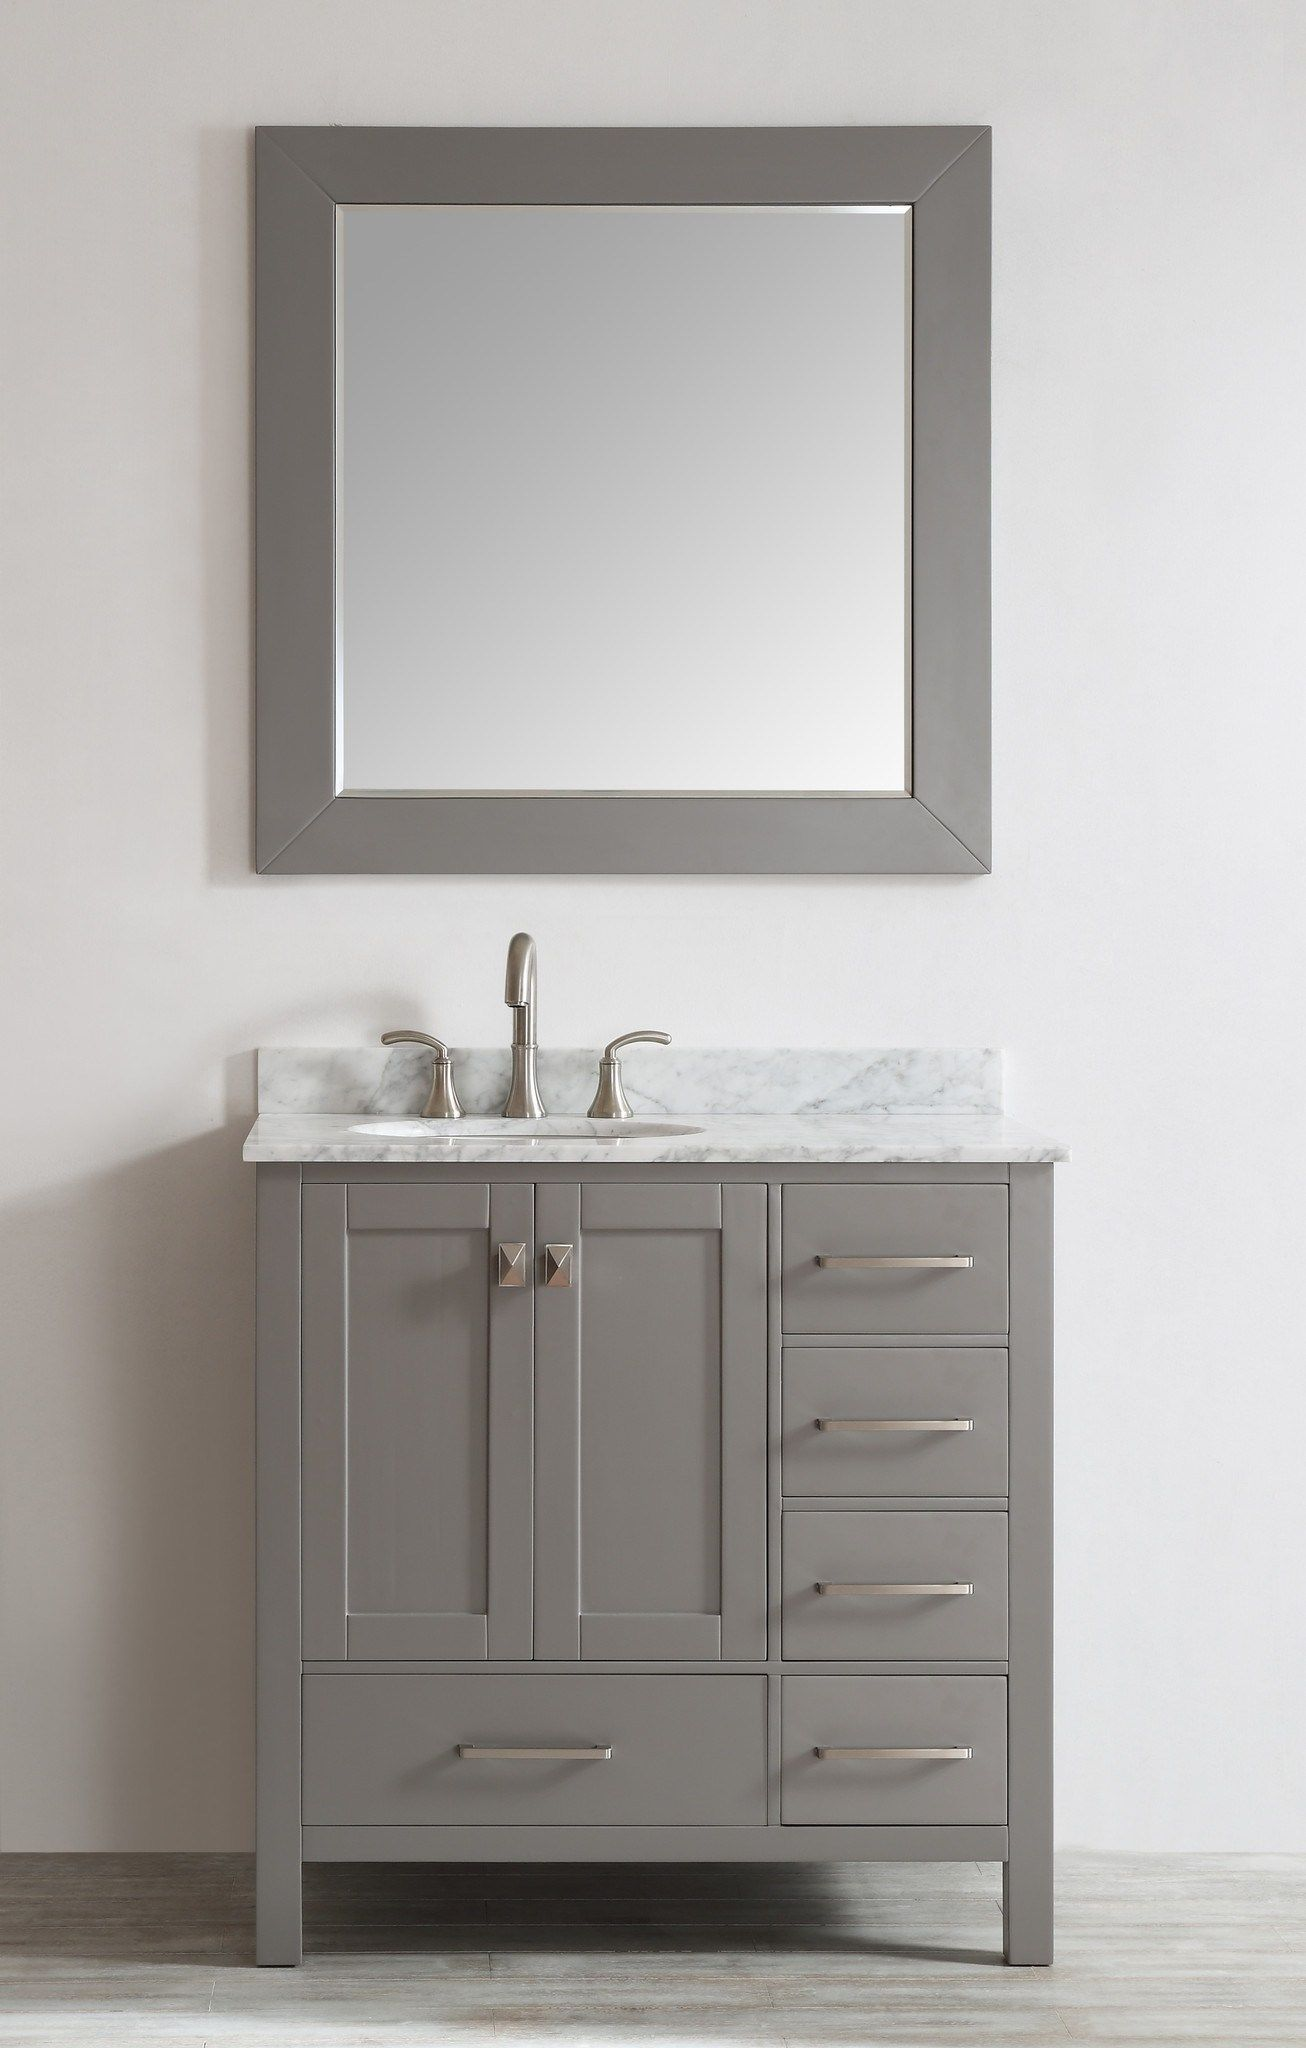 Bathroom vanities dallas tx - Eviva Aberdeen 36 Transitional Grey Bathroom Vanity With White Carrera Countertop Square Sink